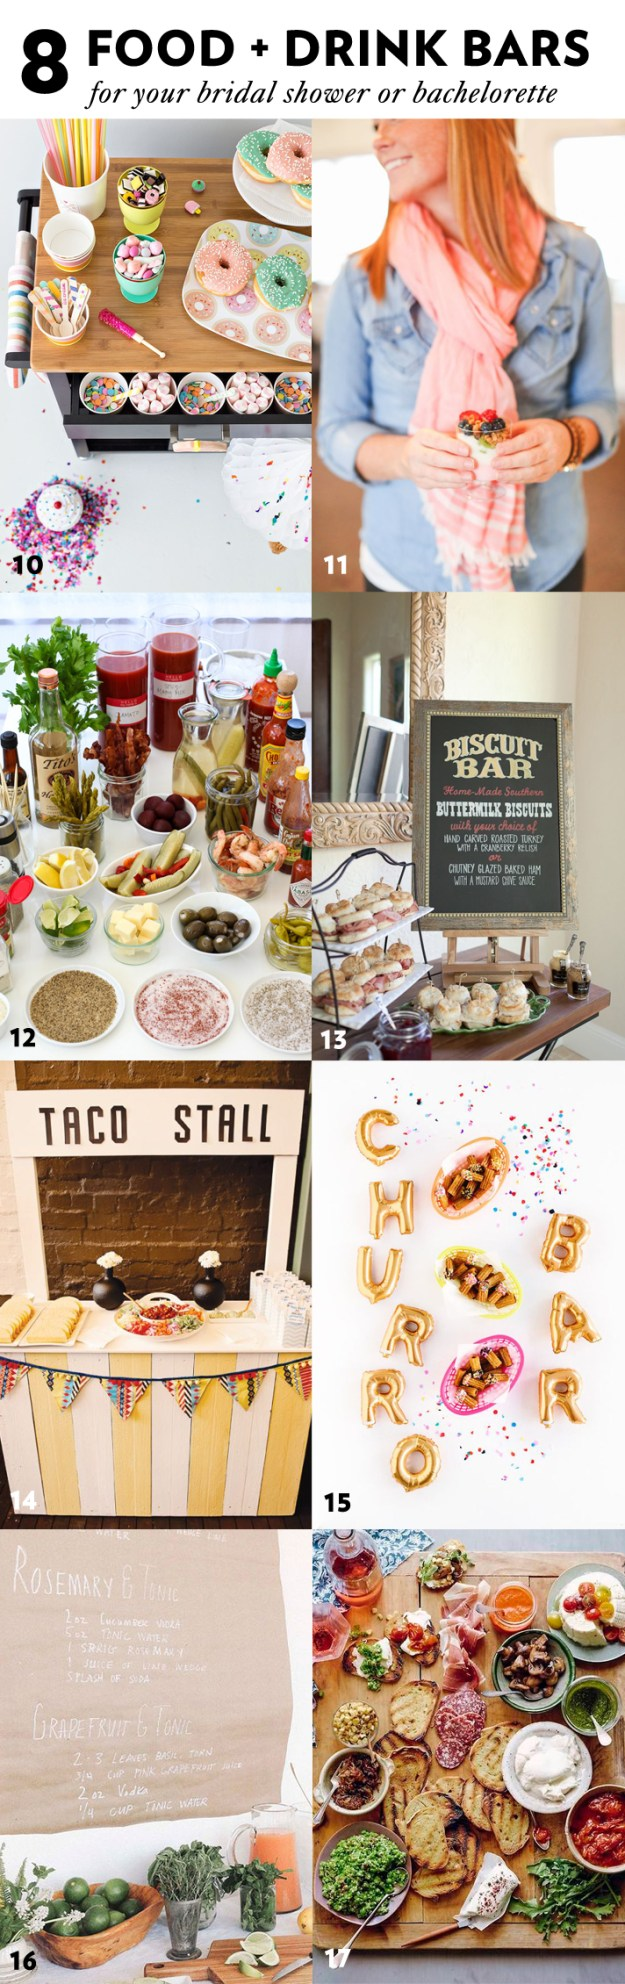 8 Food and Drink Bar Ideas For Your Bridal Shower & Bachelorette Party